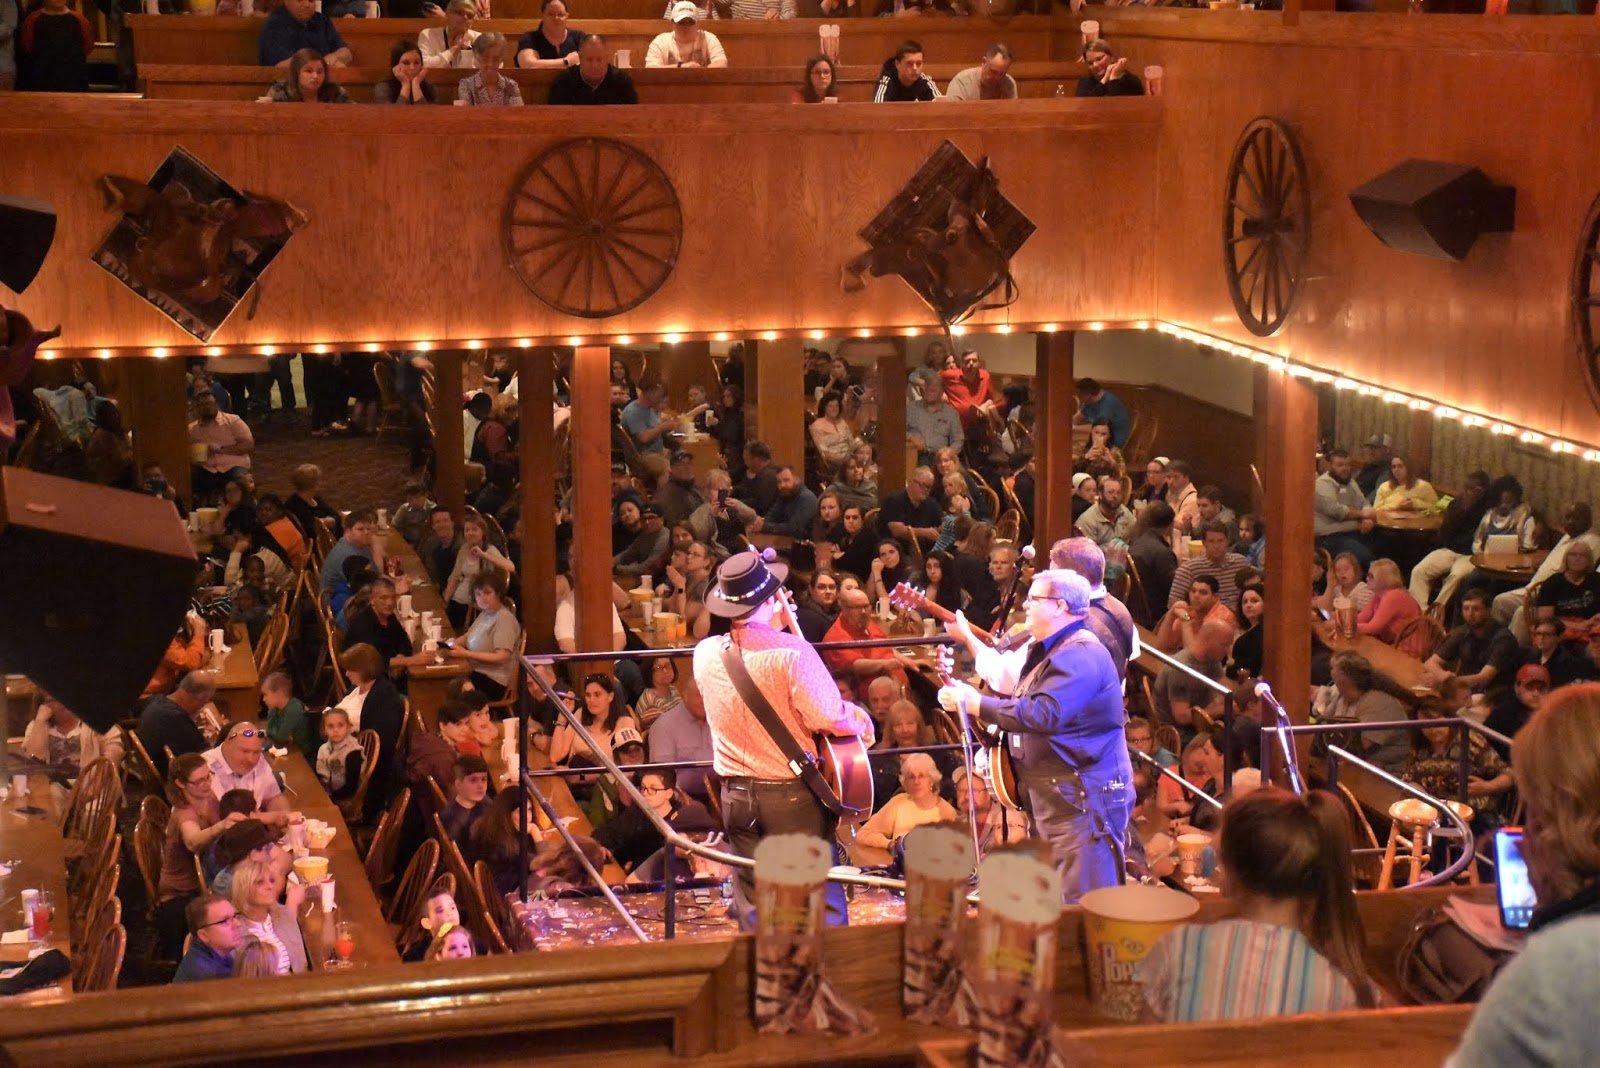 Dolly's Stampede Two-Story Saloon